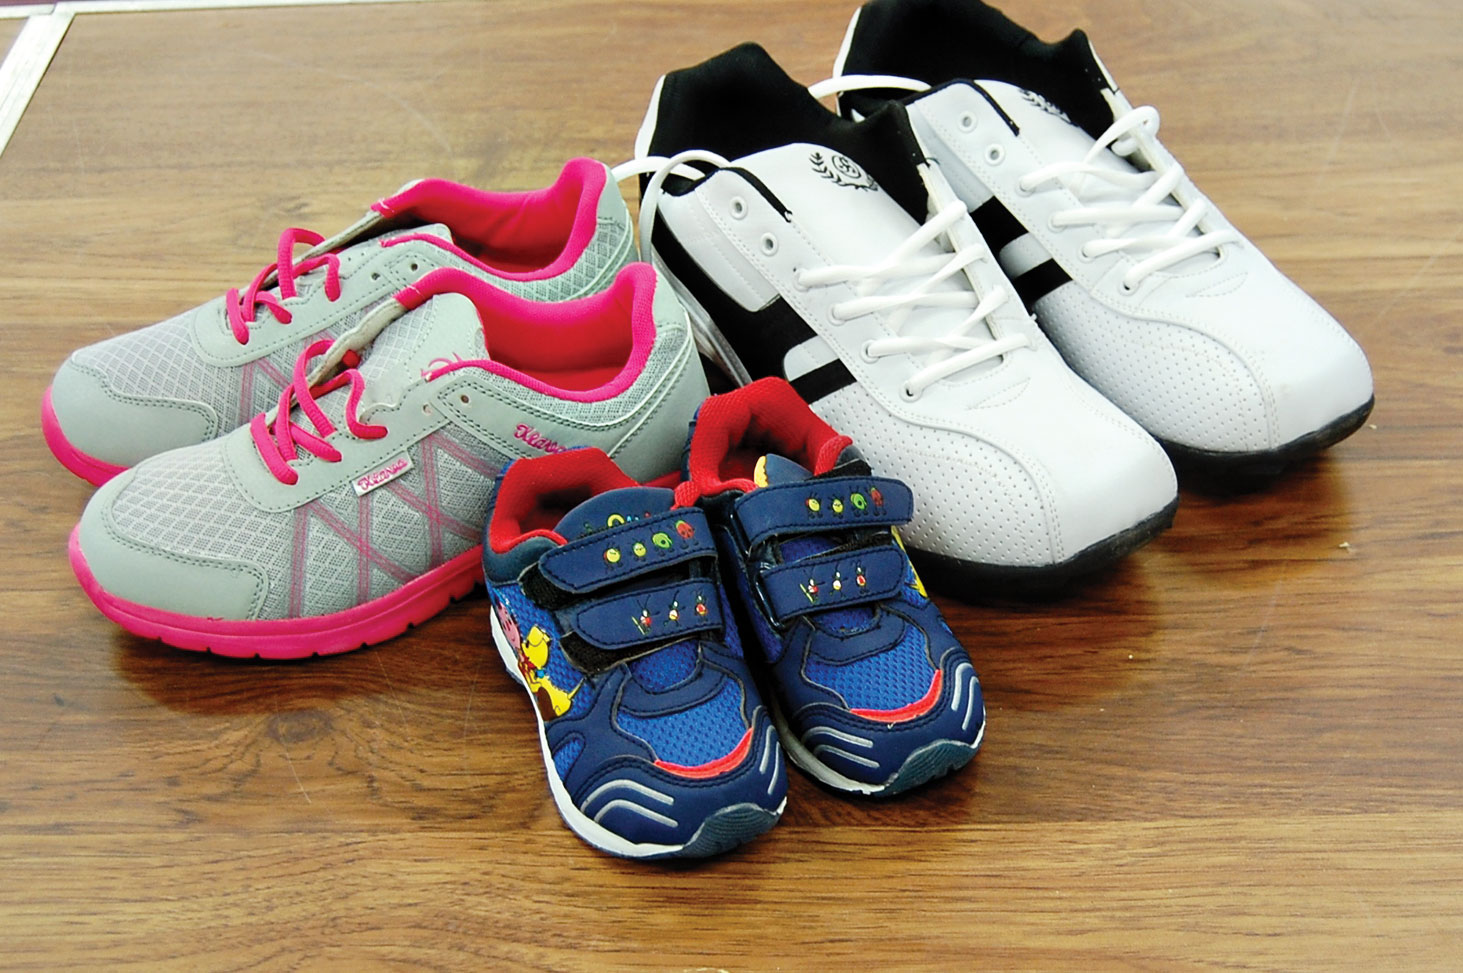 Shoes from smallest to largest sizes.